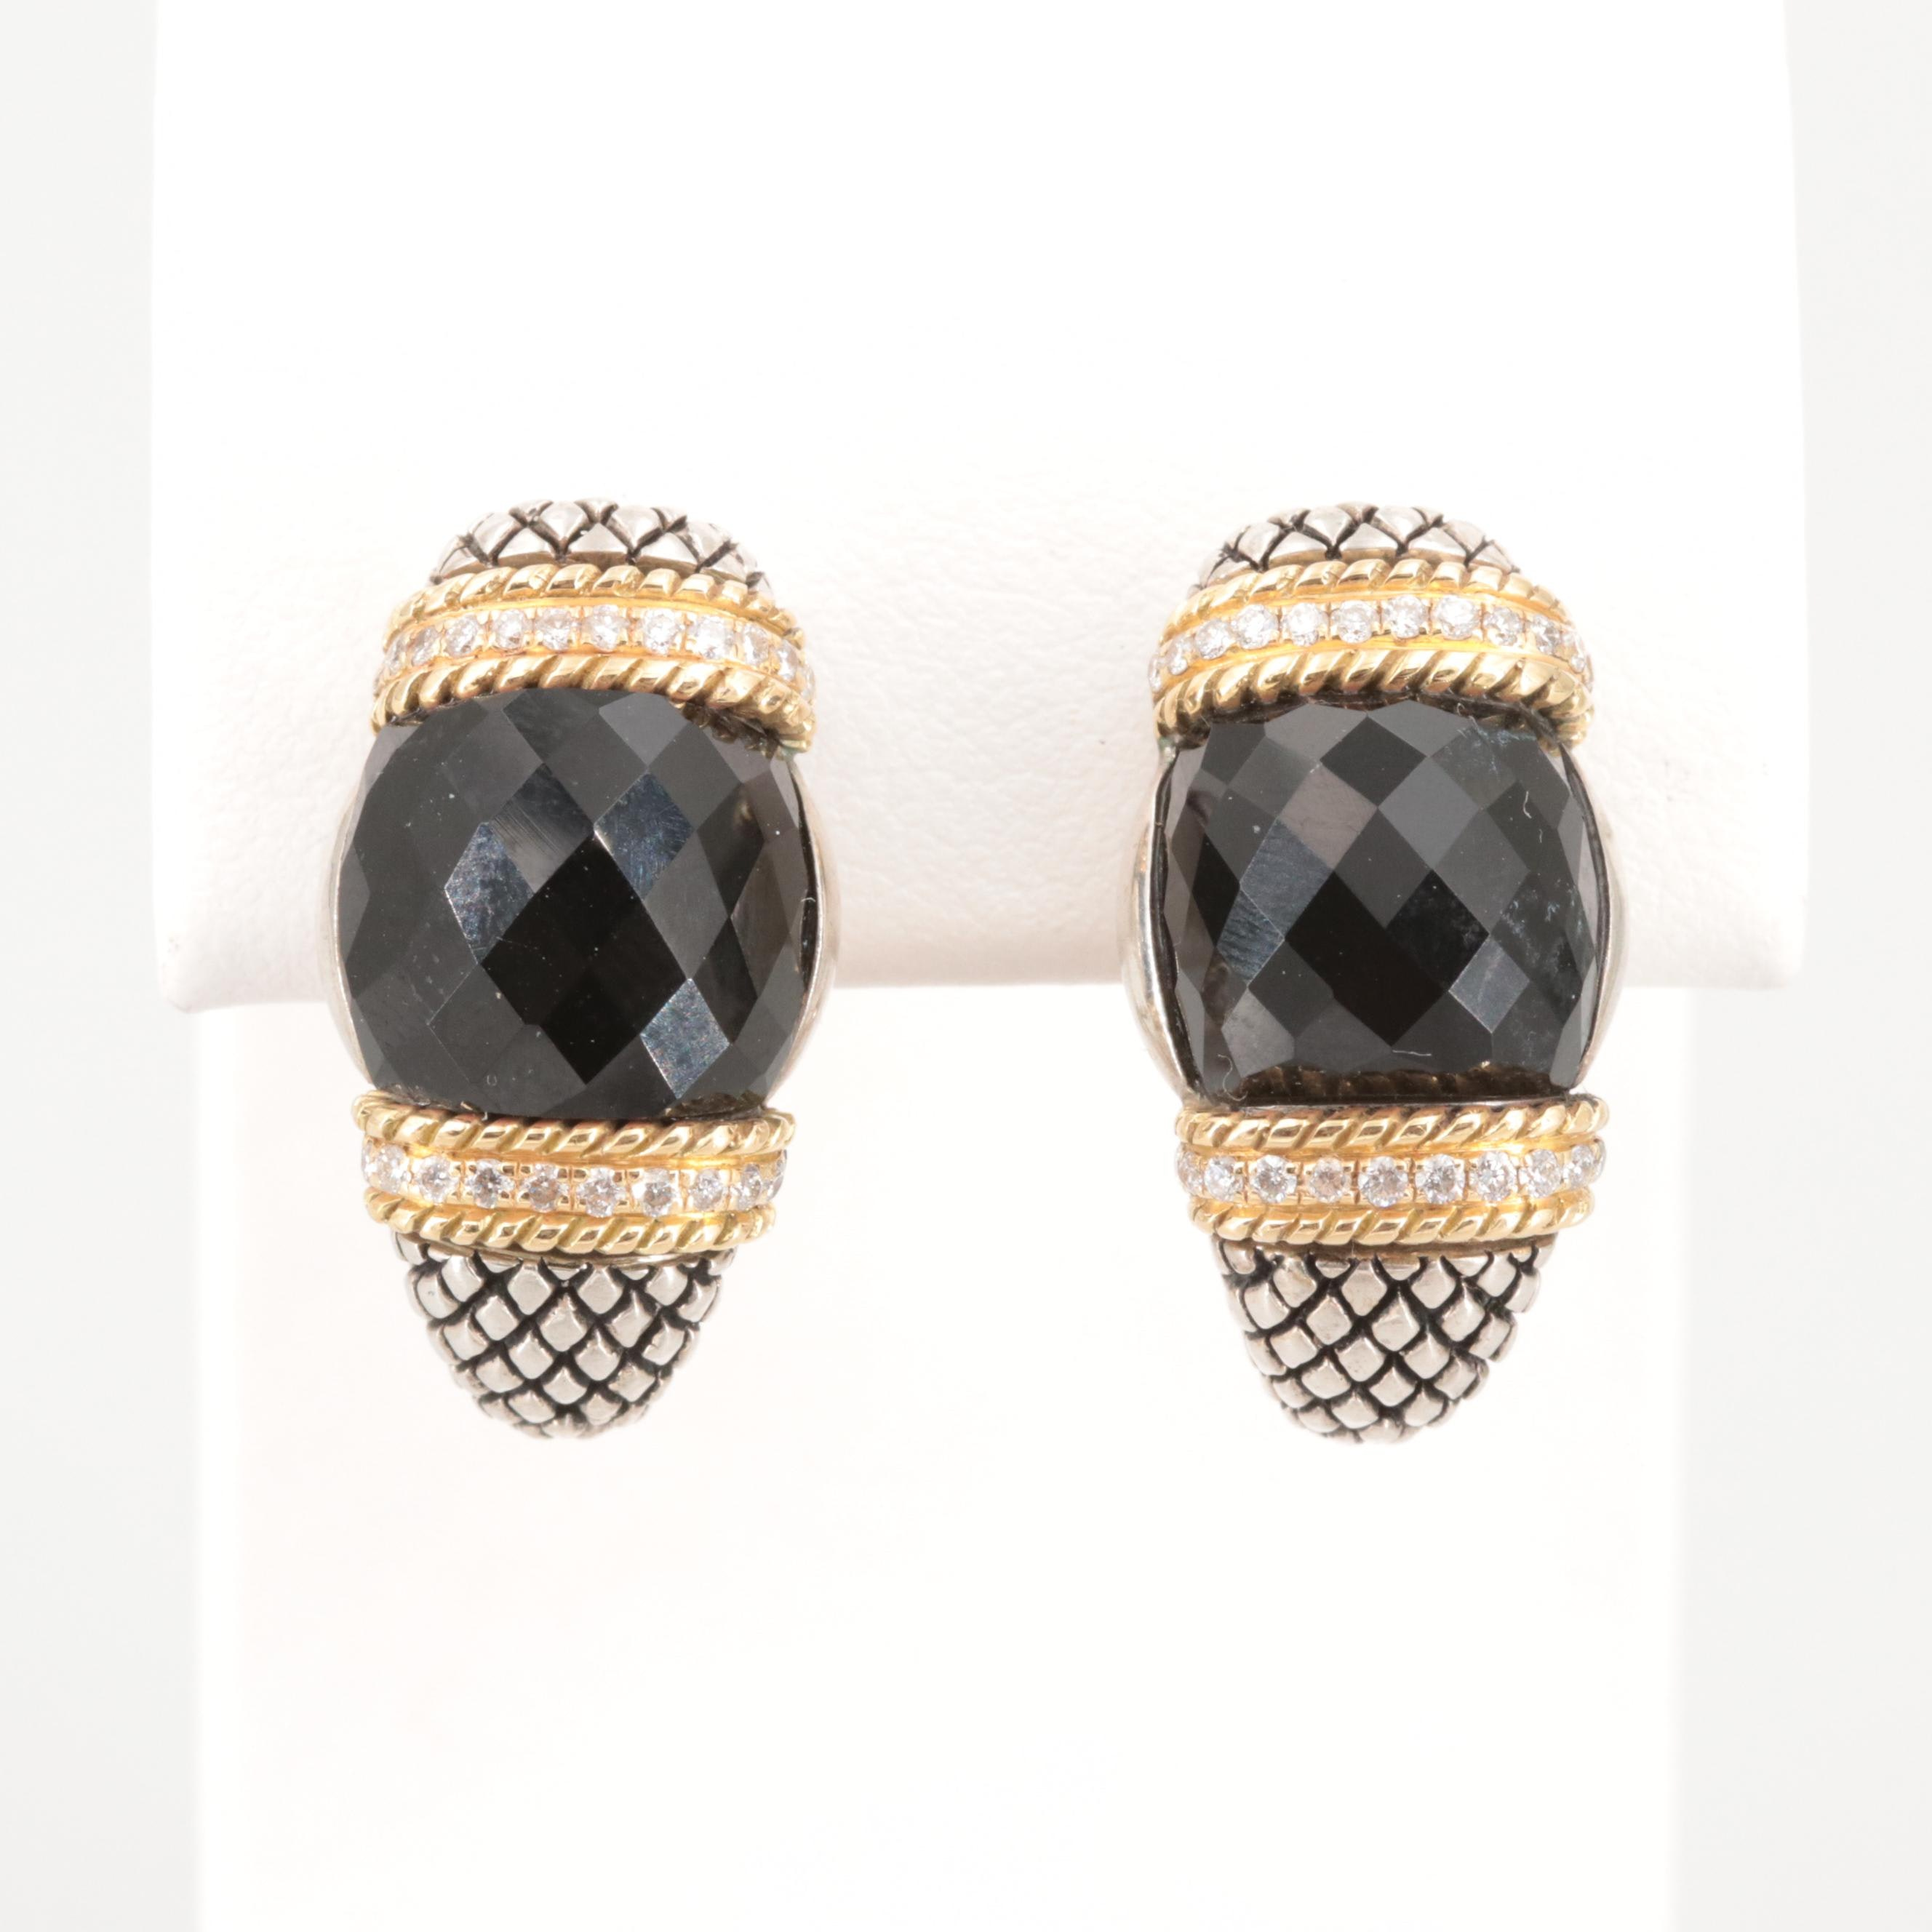 Andrea Candela Sterling Silver Black Onyx and Diamond Earrings with 18K Accents